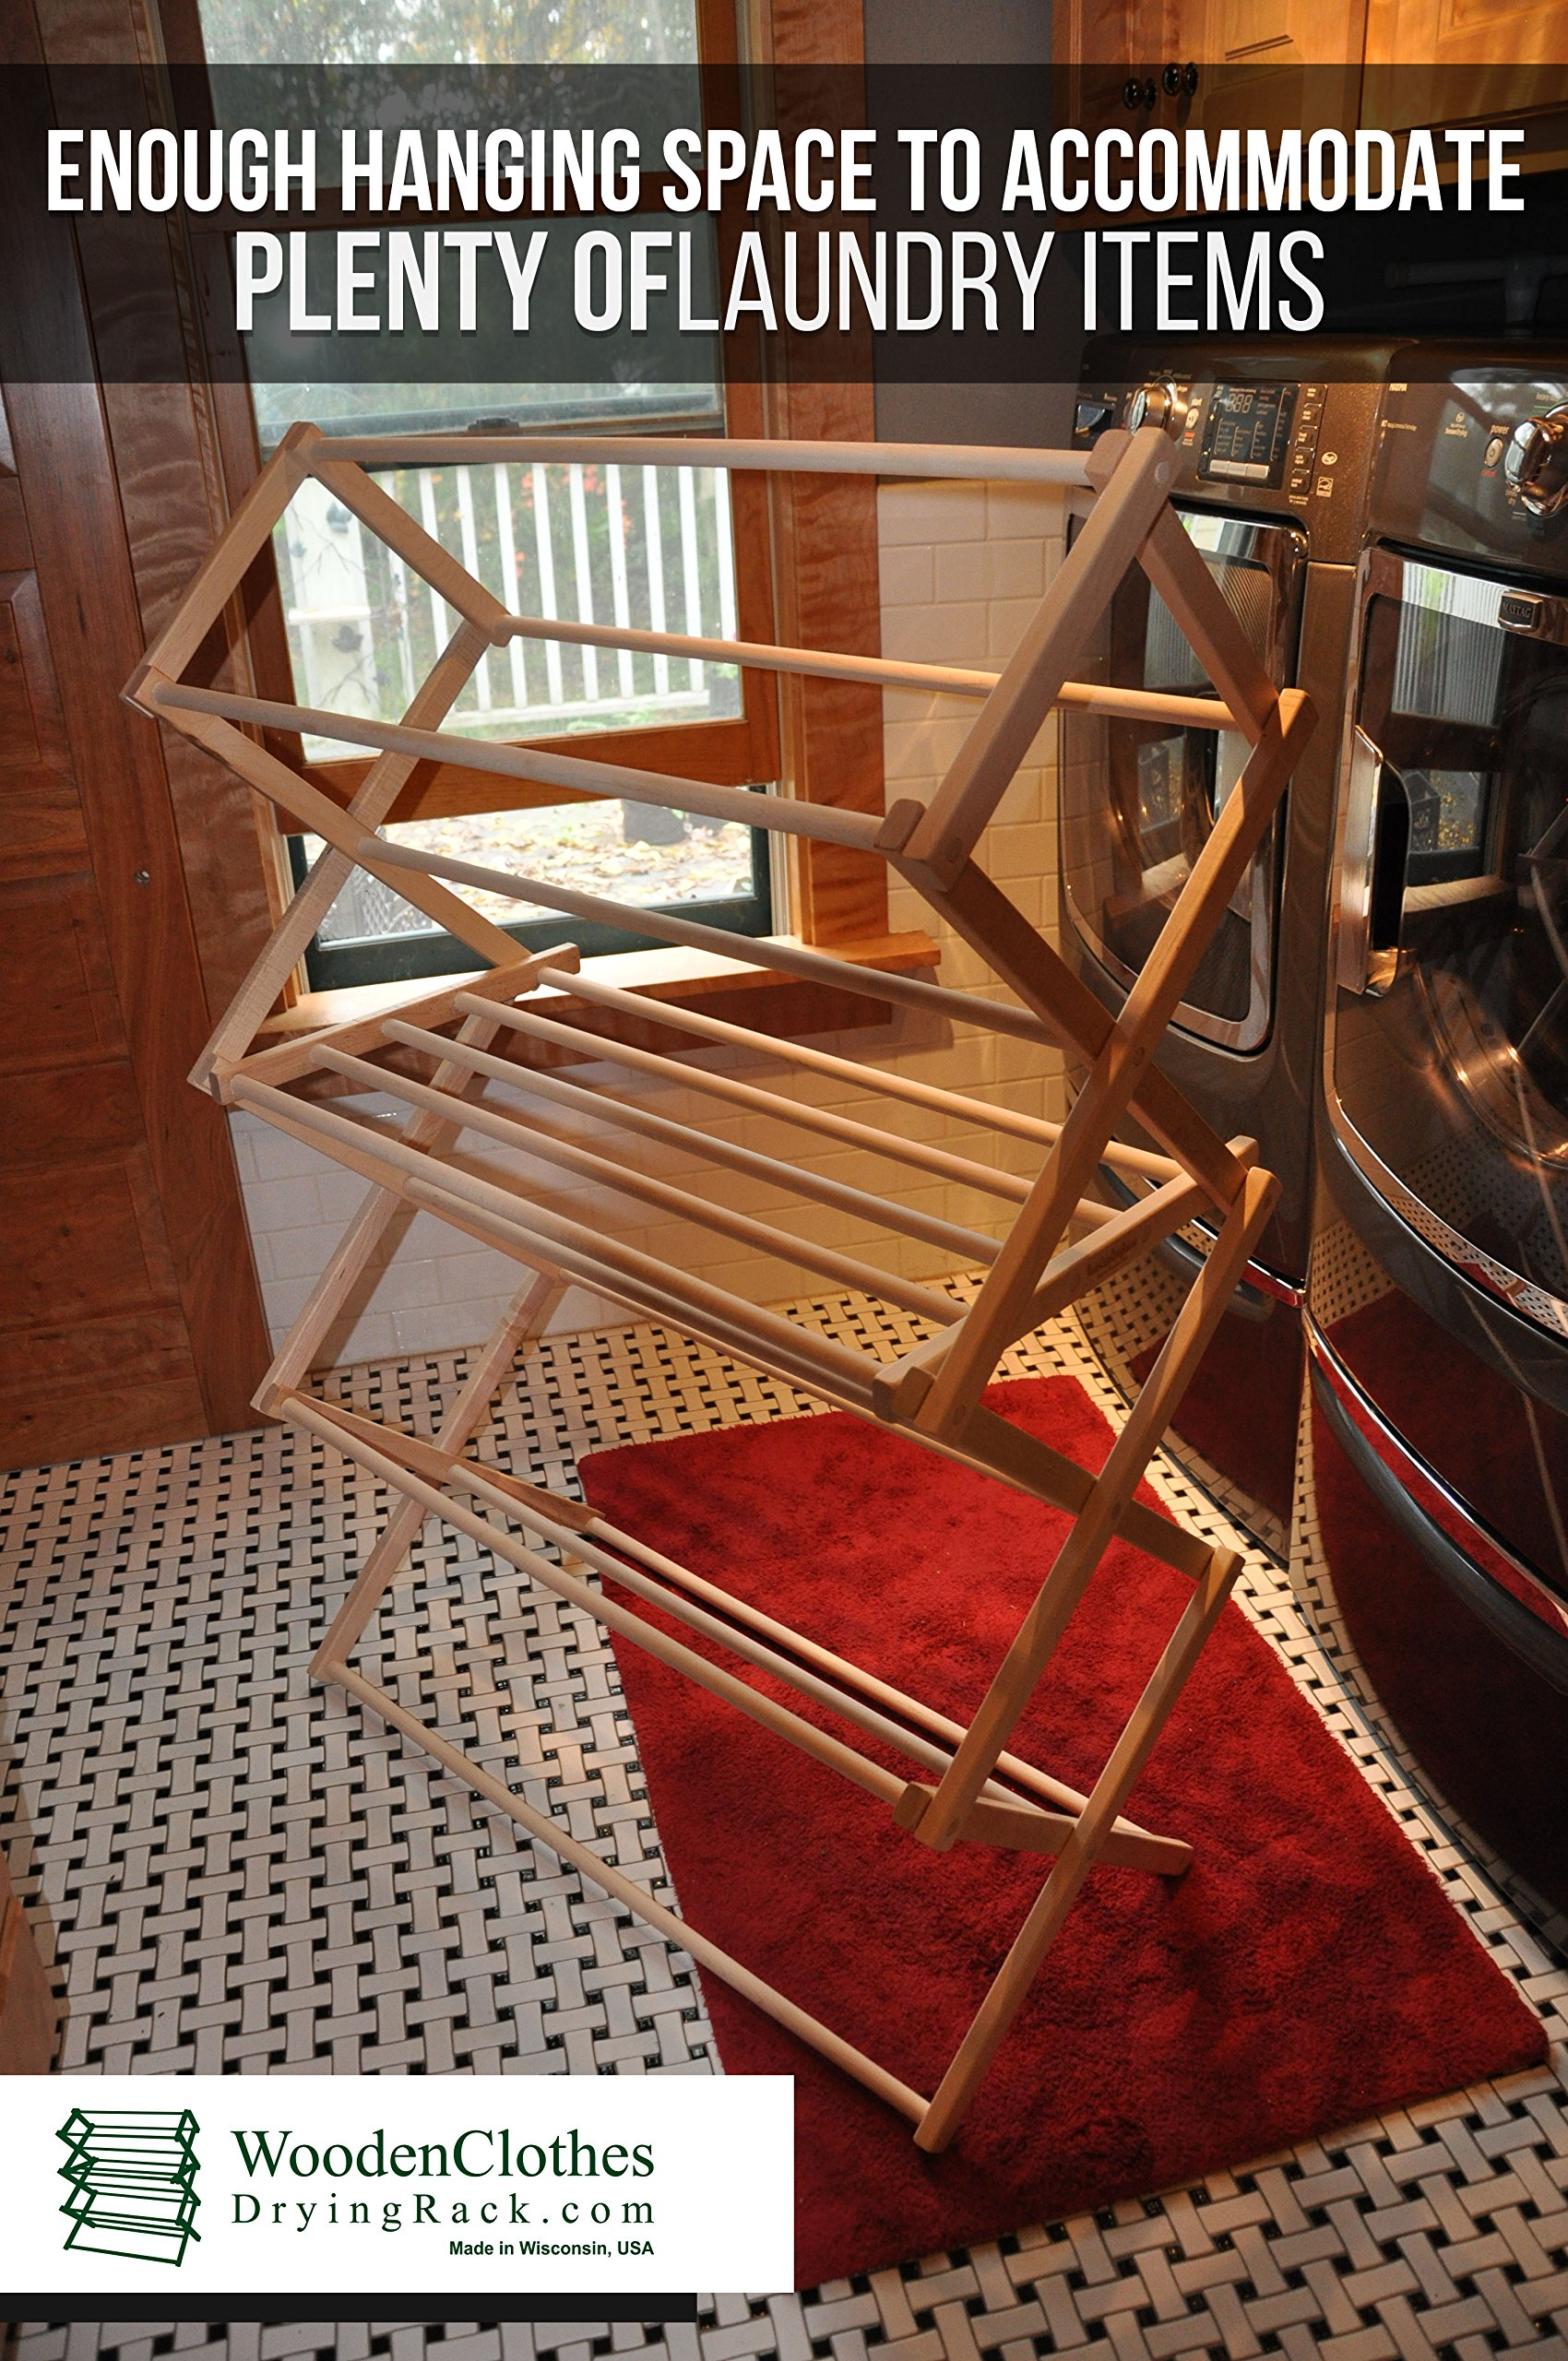 Medium Wooden Clothes Drying Rack by Benson Wood Products by Benson Wood Products (Image #4)